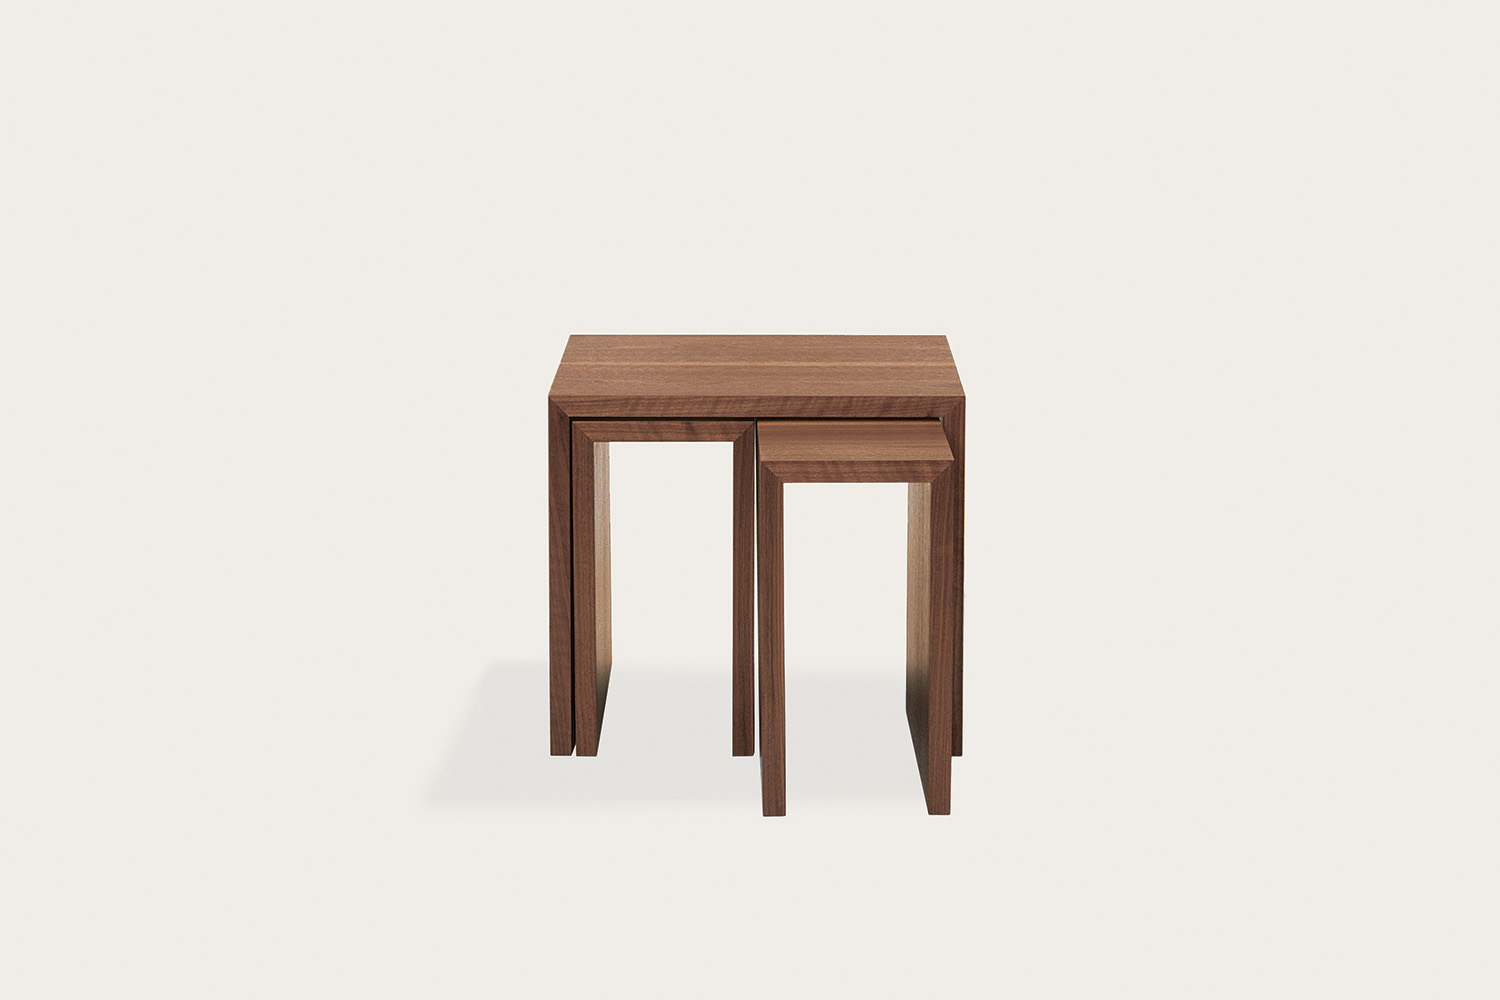 More Nesting Tables in walnut - Speke Klein